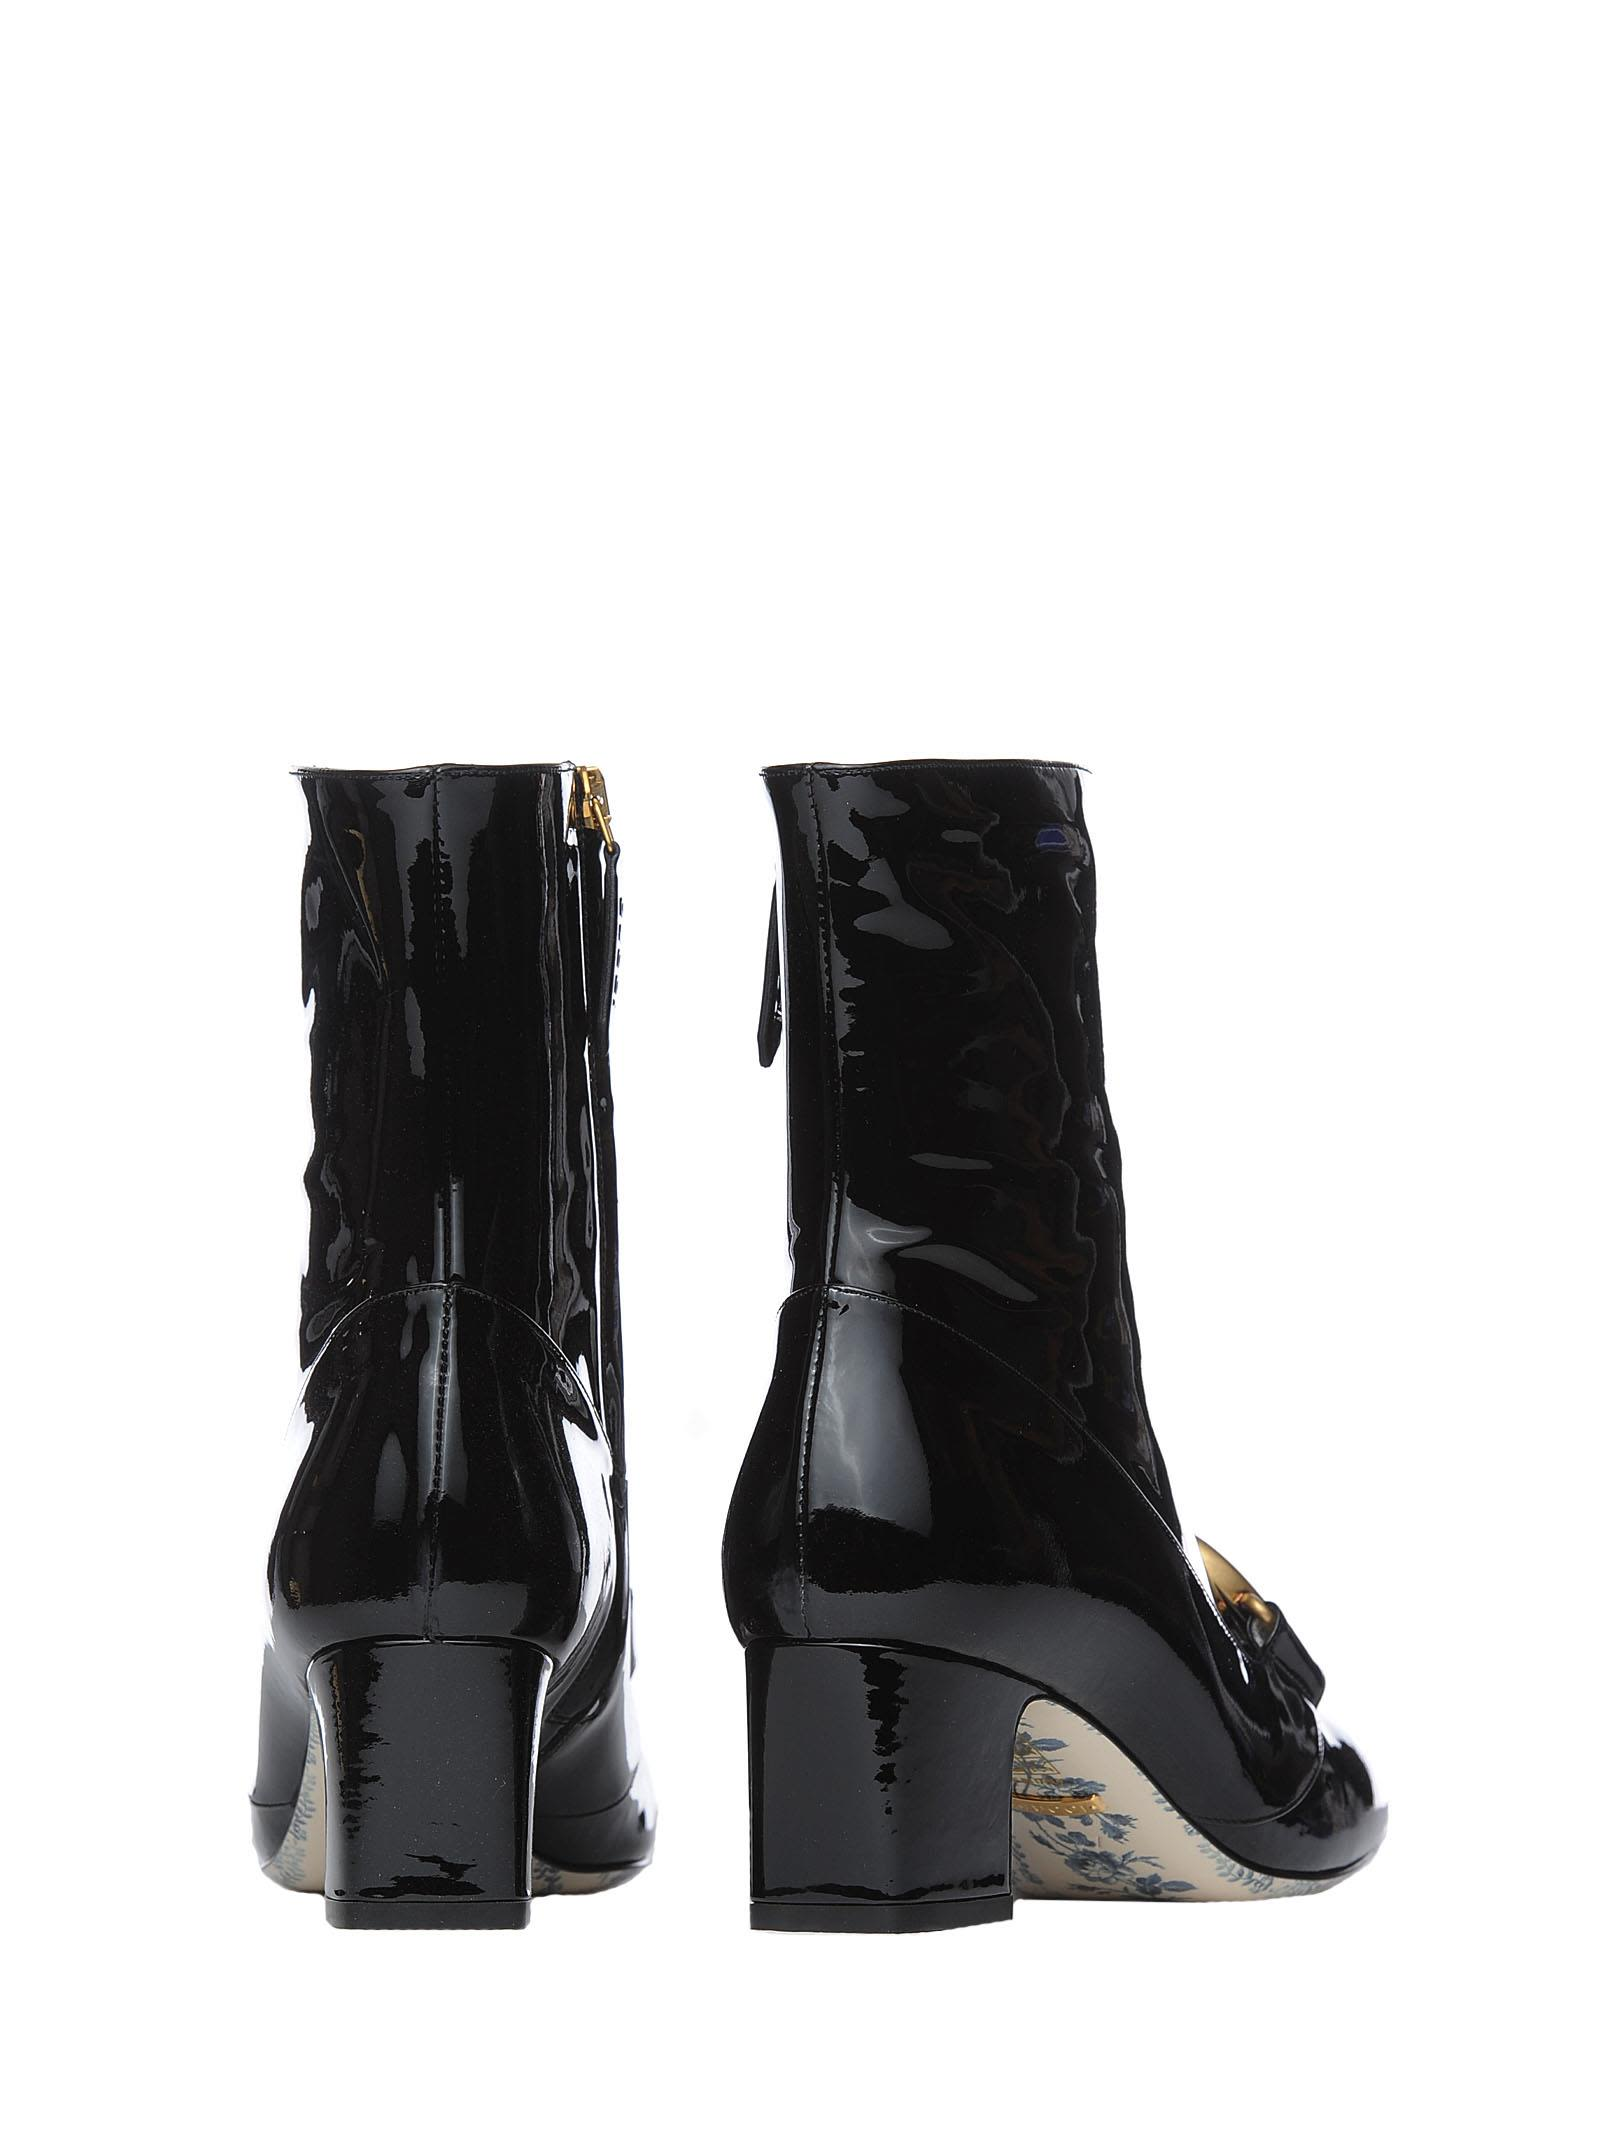 Gucci Gucci Black Patent Leather Ankle Boots With Double G - NERO ... 7f3e65d645c